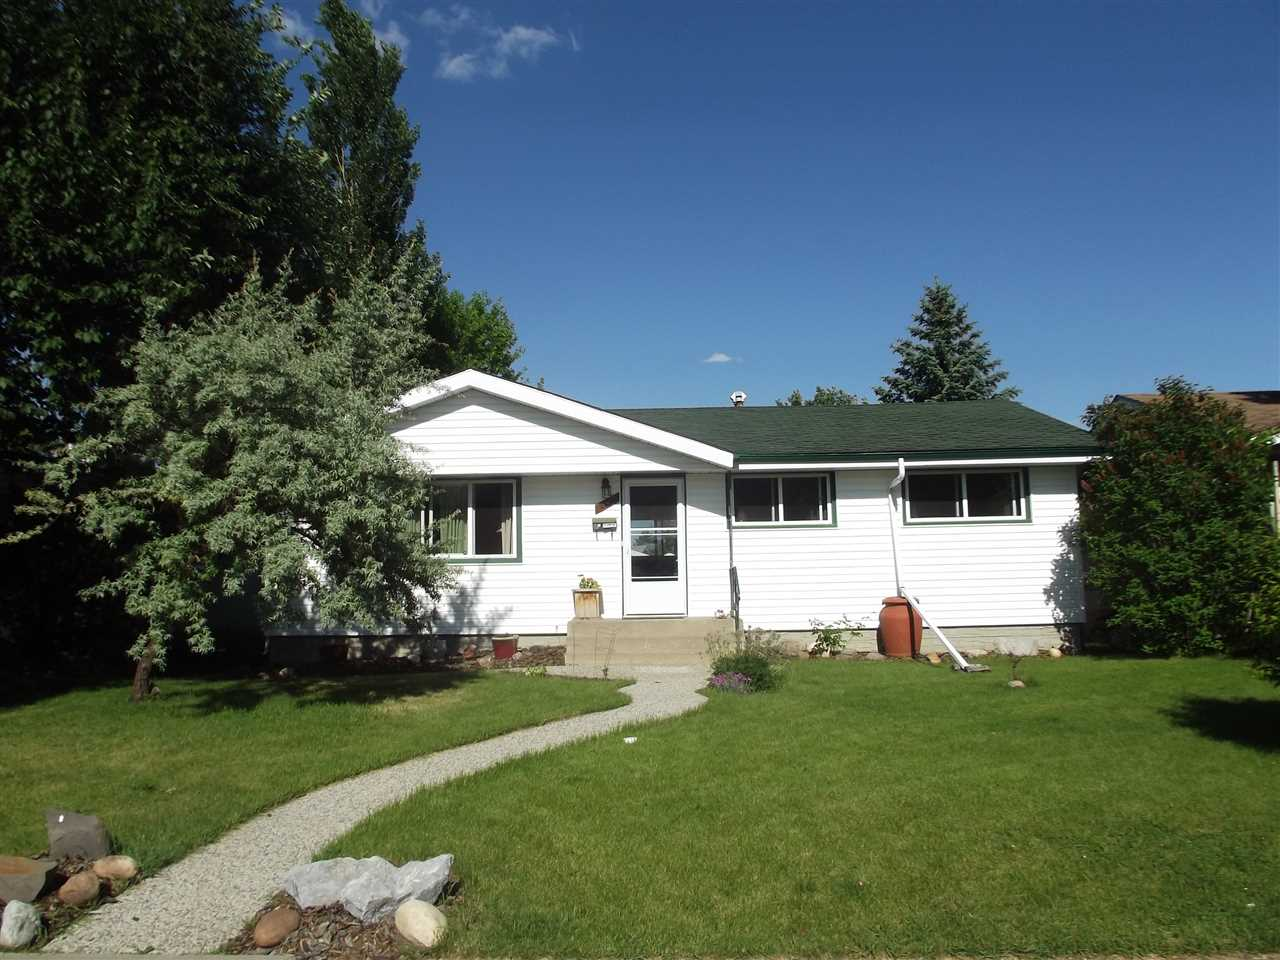 Main Photo: 8103 162 Street in Edmonton: Zone 22 House for sale : MLS® # E4069128